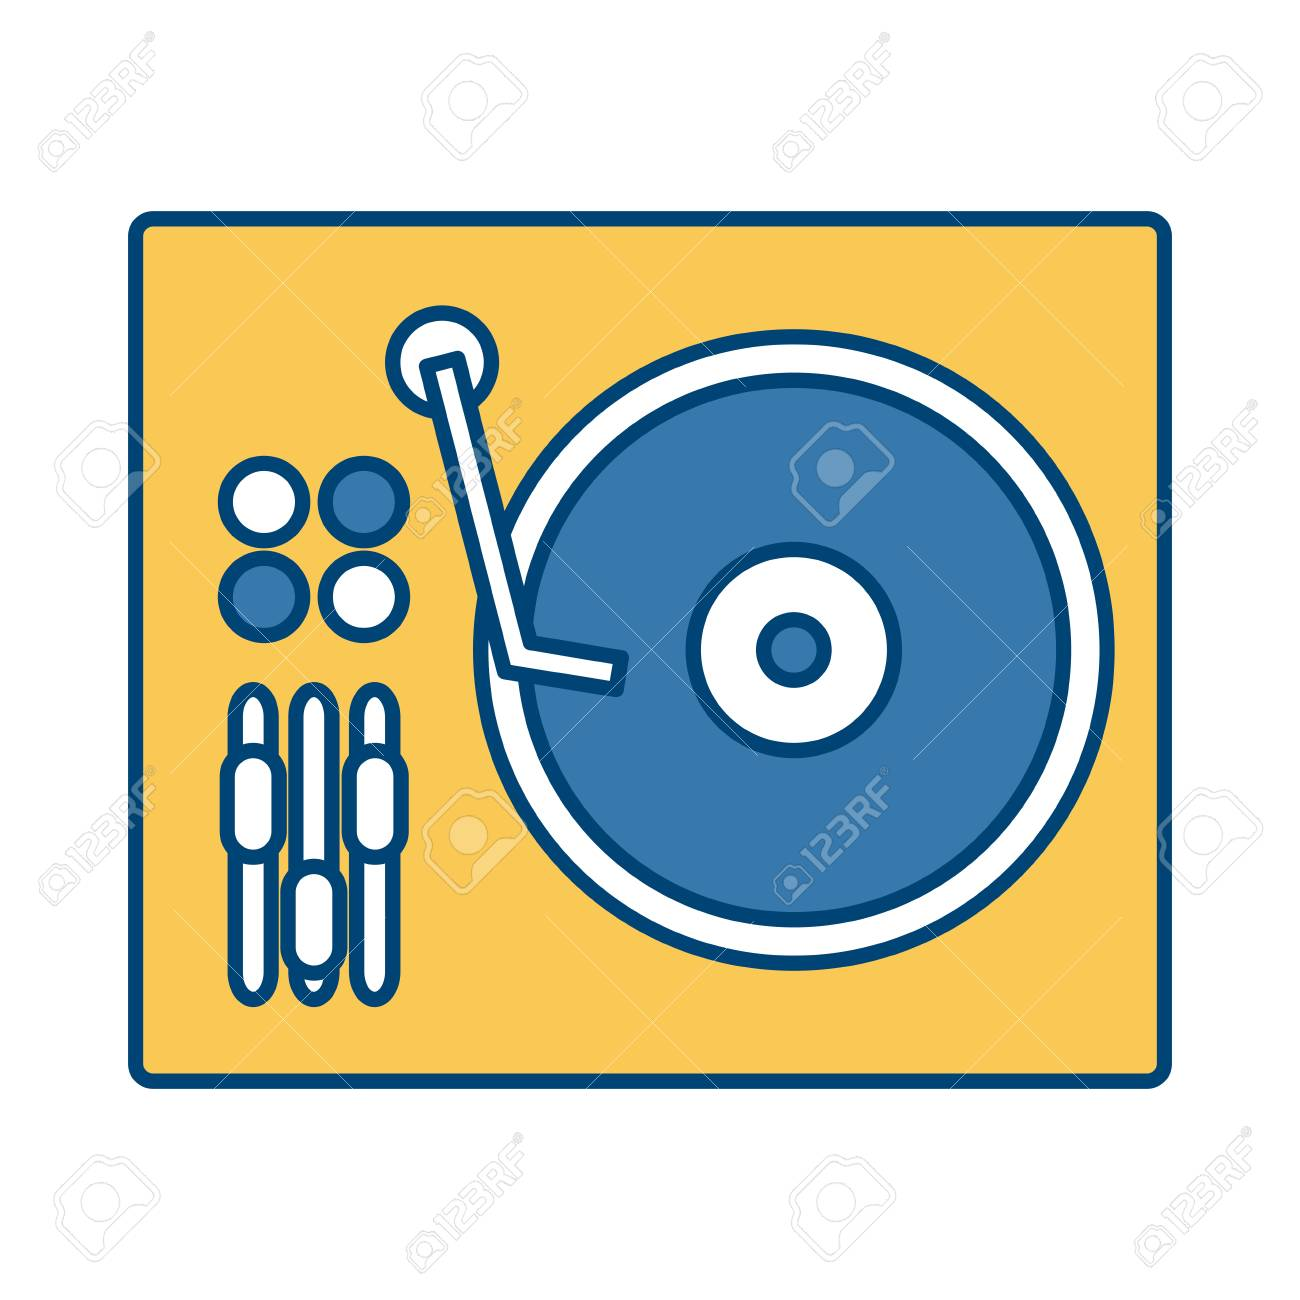 DJ turntable symbol icon vector illustration graphic design